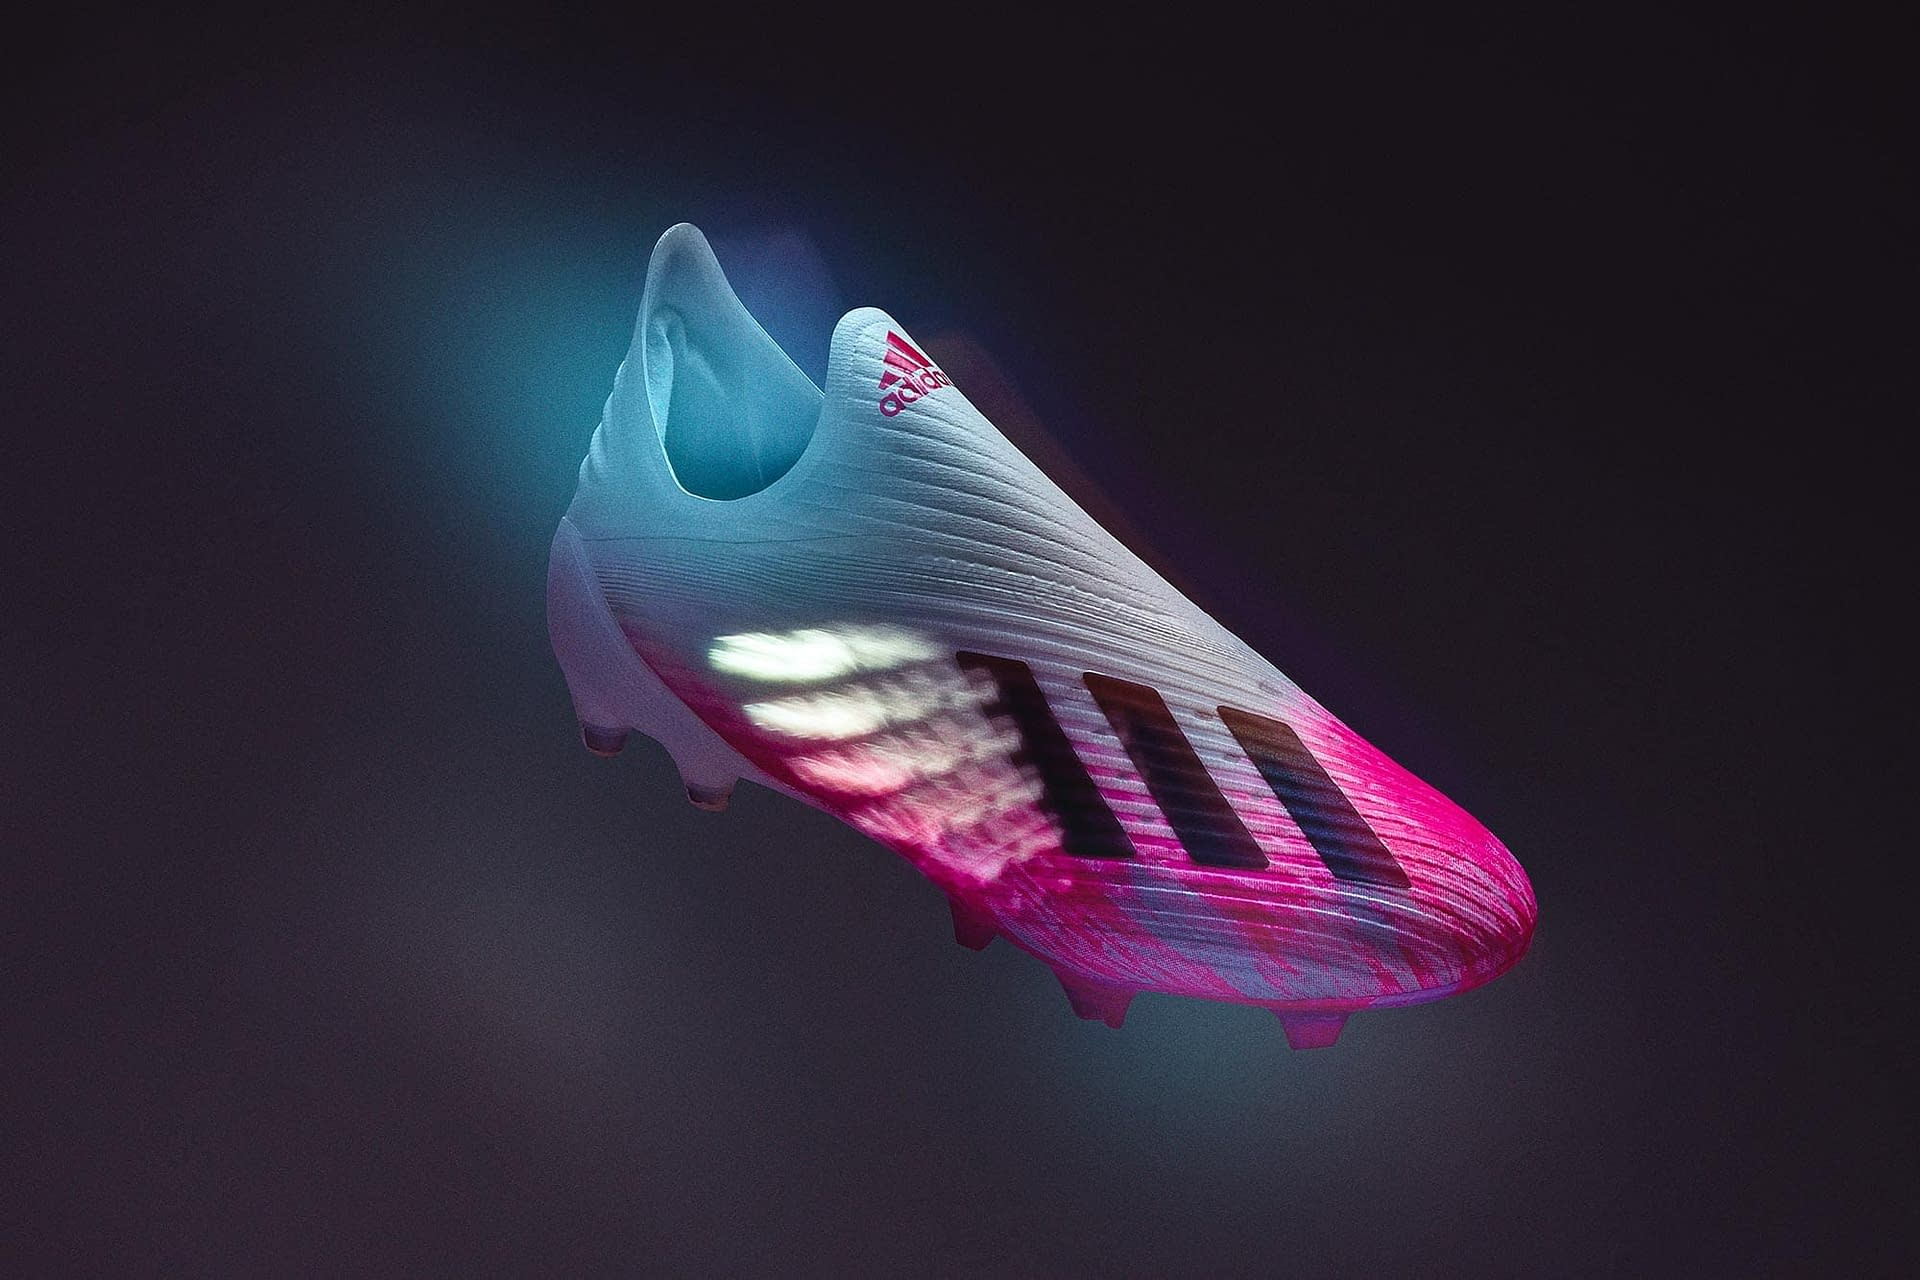 creative stills imagery of the new adidas x19 football boot photographed in studio using tether tools cables